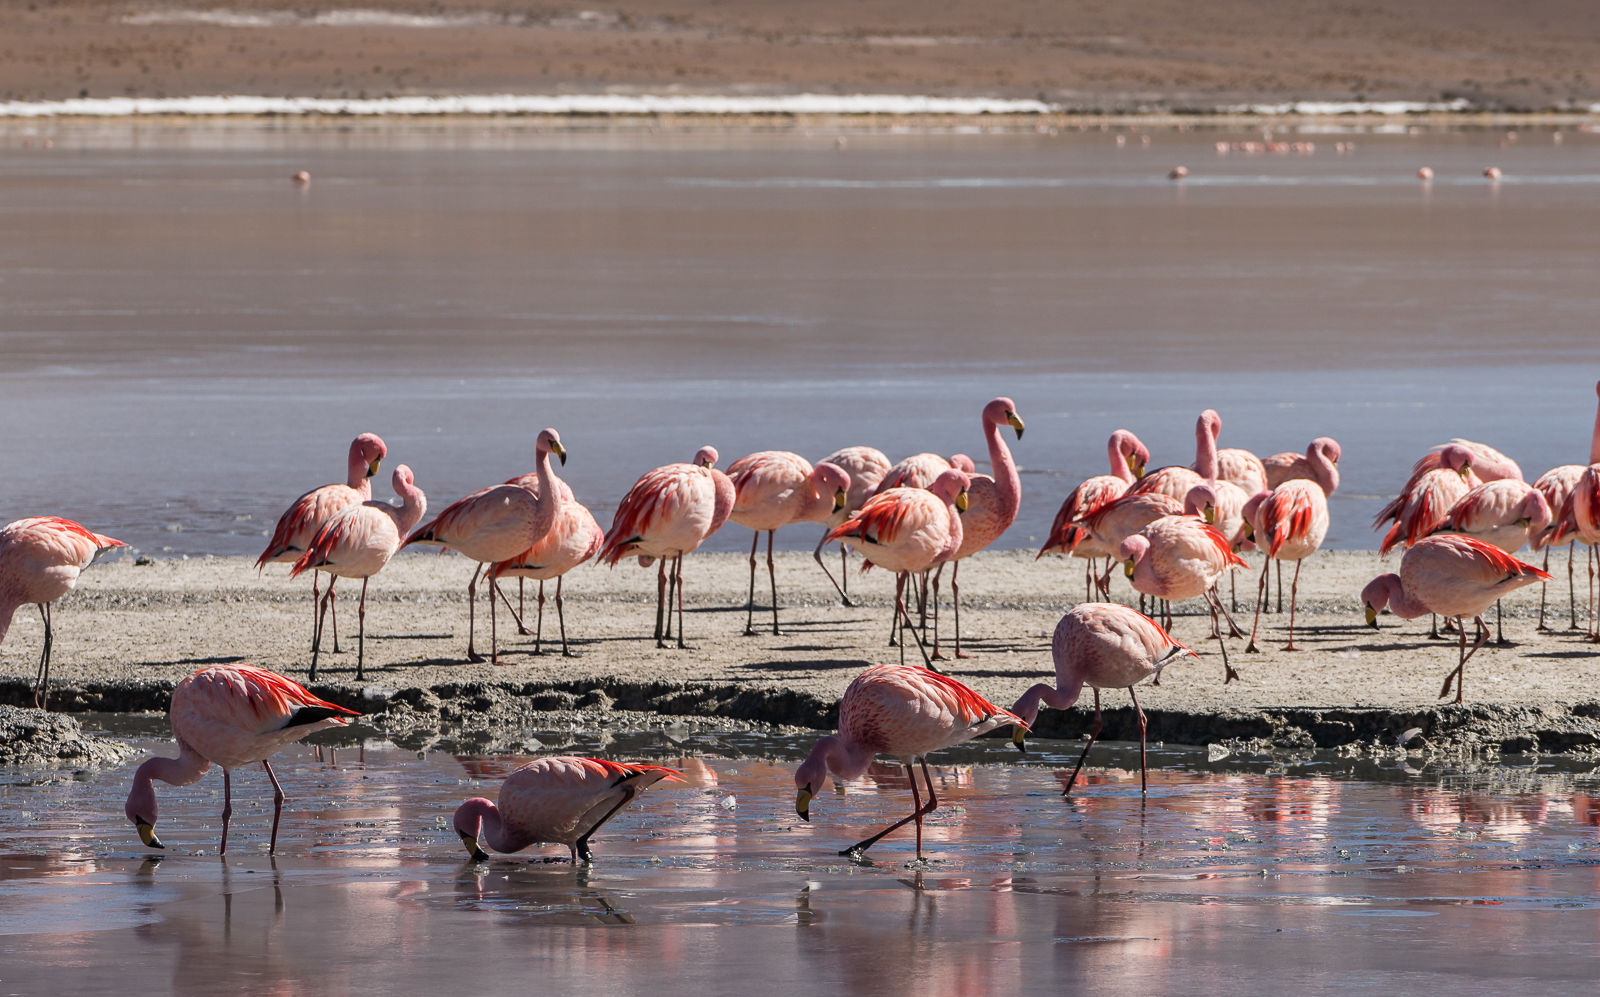 The flamingos don't seem to mind as long as you don't get too close